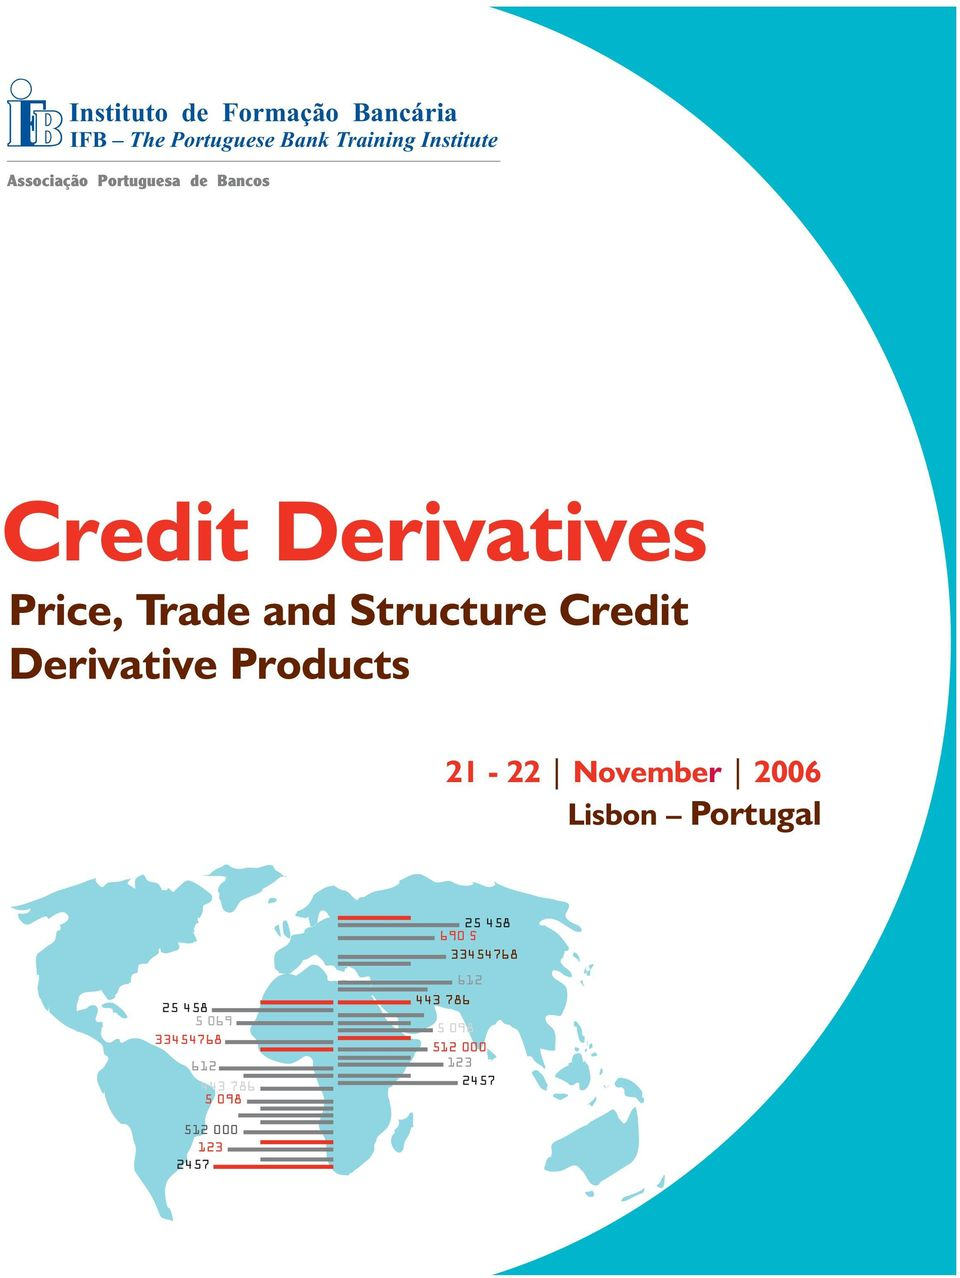 Credit Derivative Products 21-22 November 2006 Lisbon Portugal 25 458 5 069